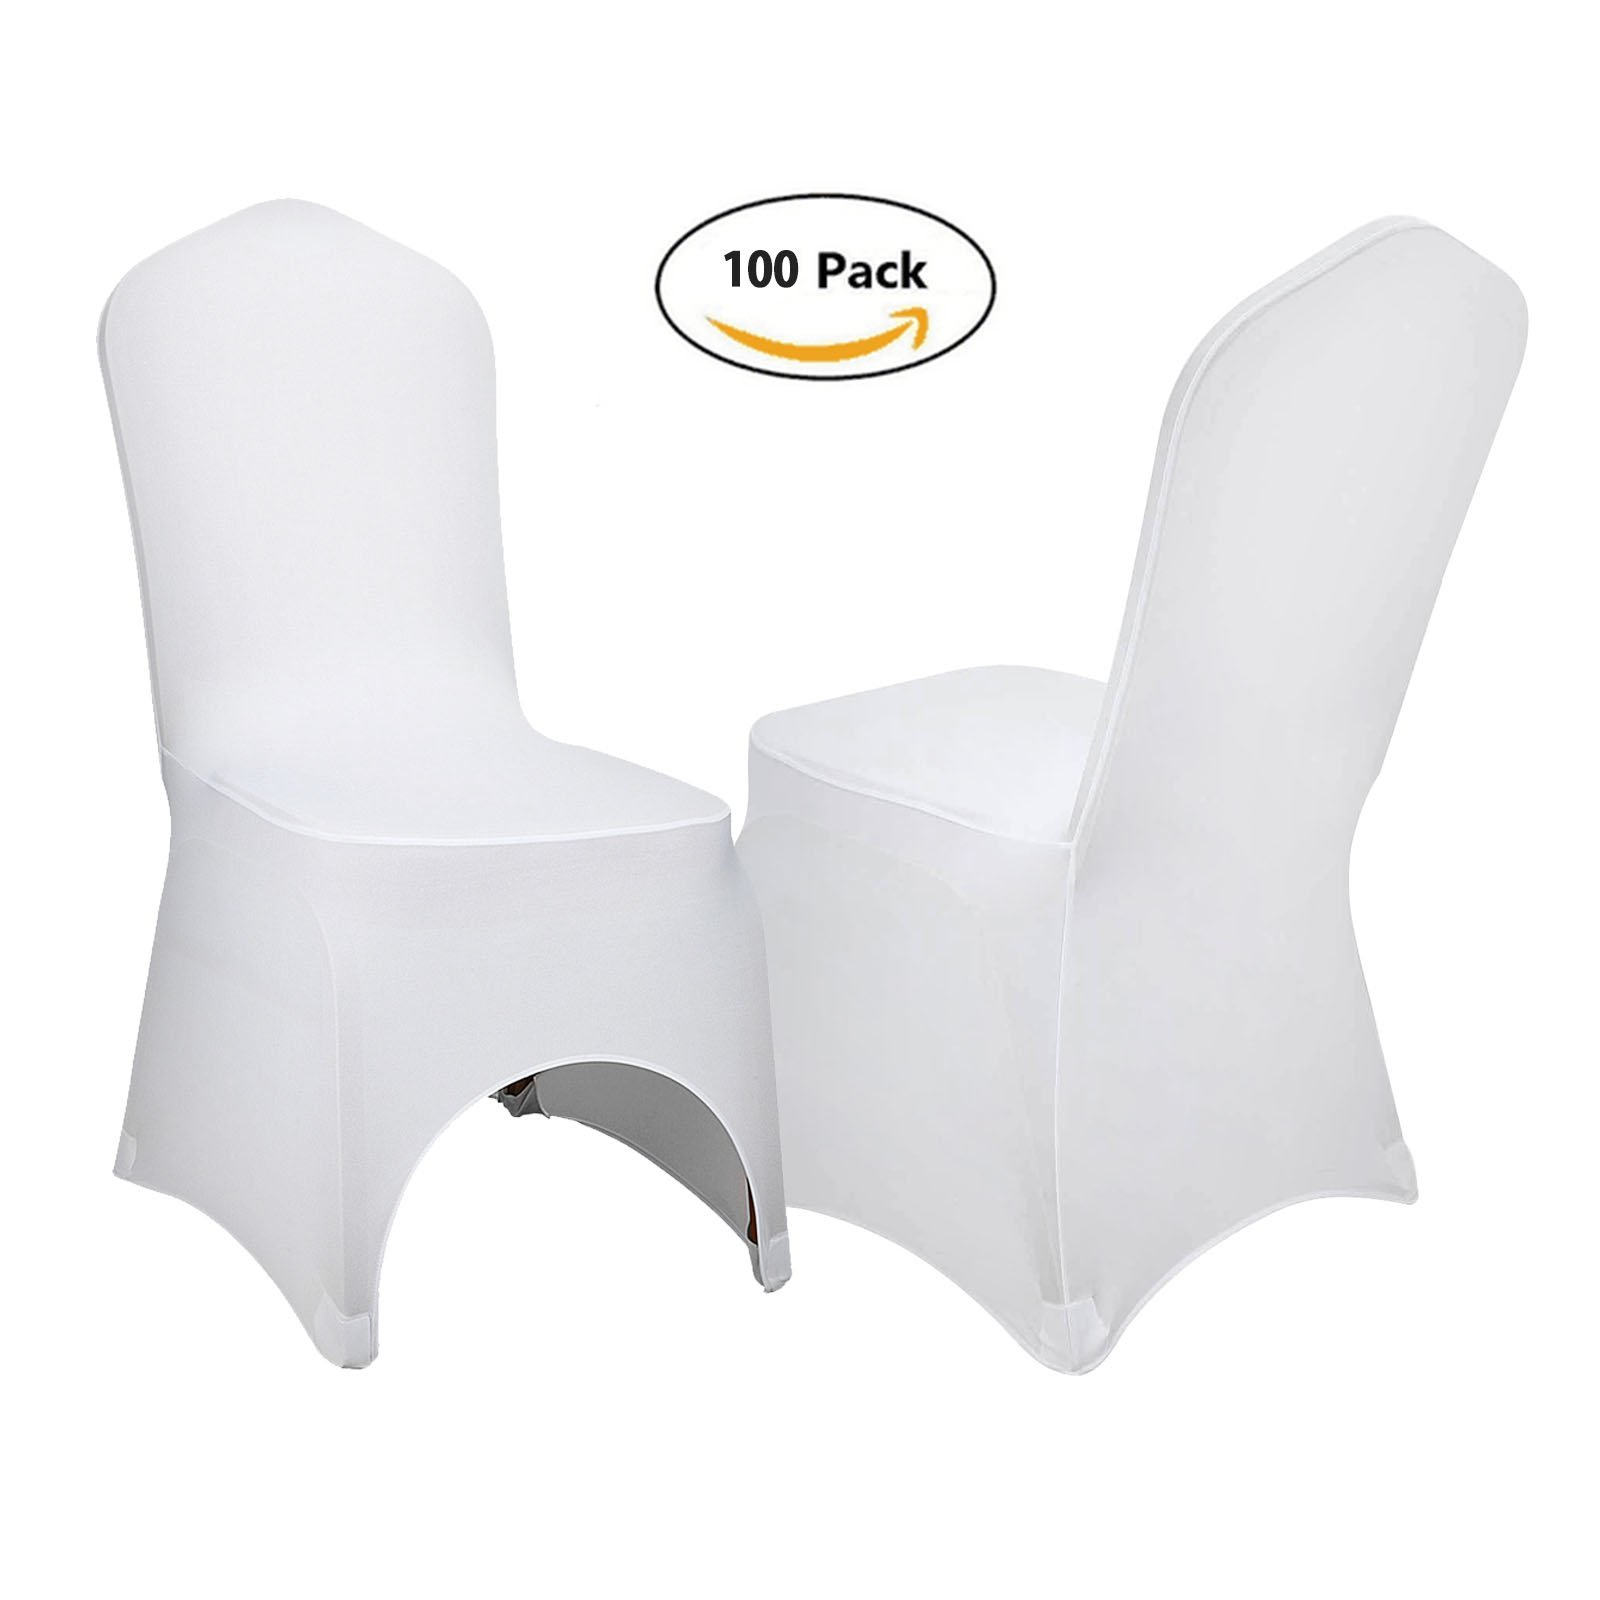 VEVOR Set of 100pcs White Color Polyester Spandex Banquet Dining Chair Covers for Wedding or Party Use (100 pc) by VEVOR